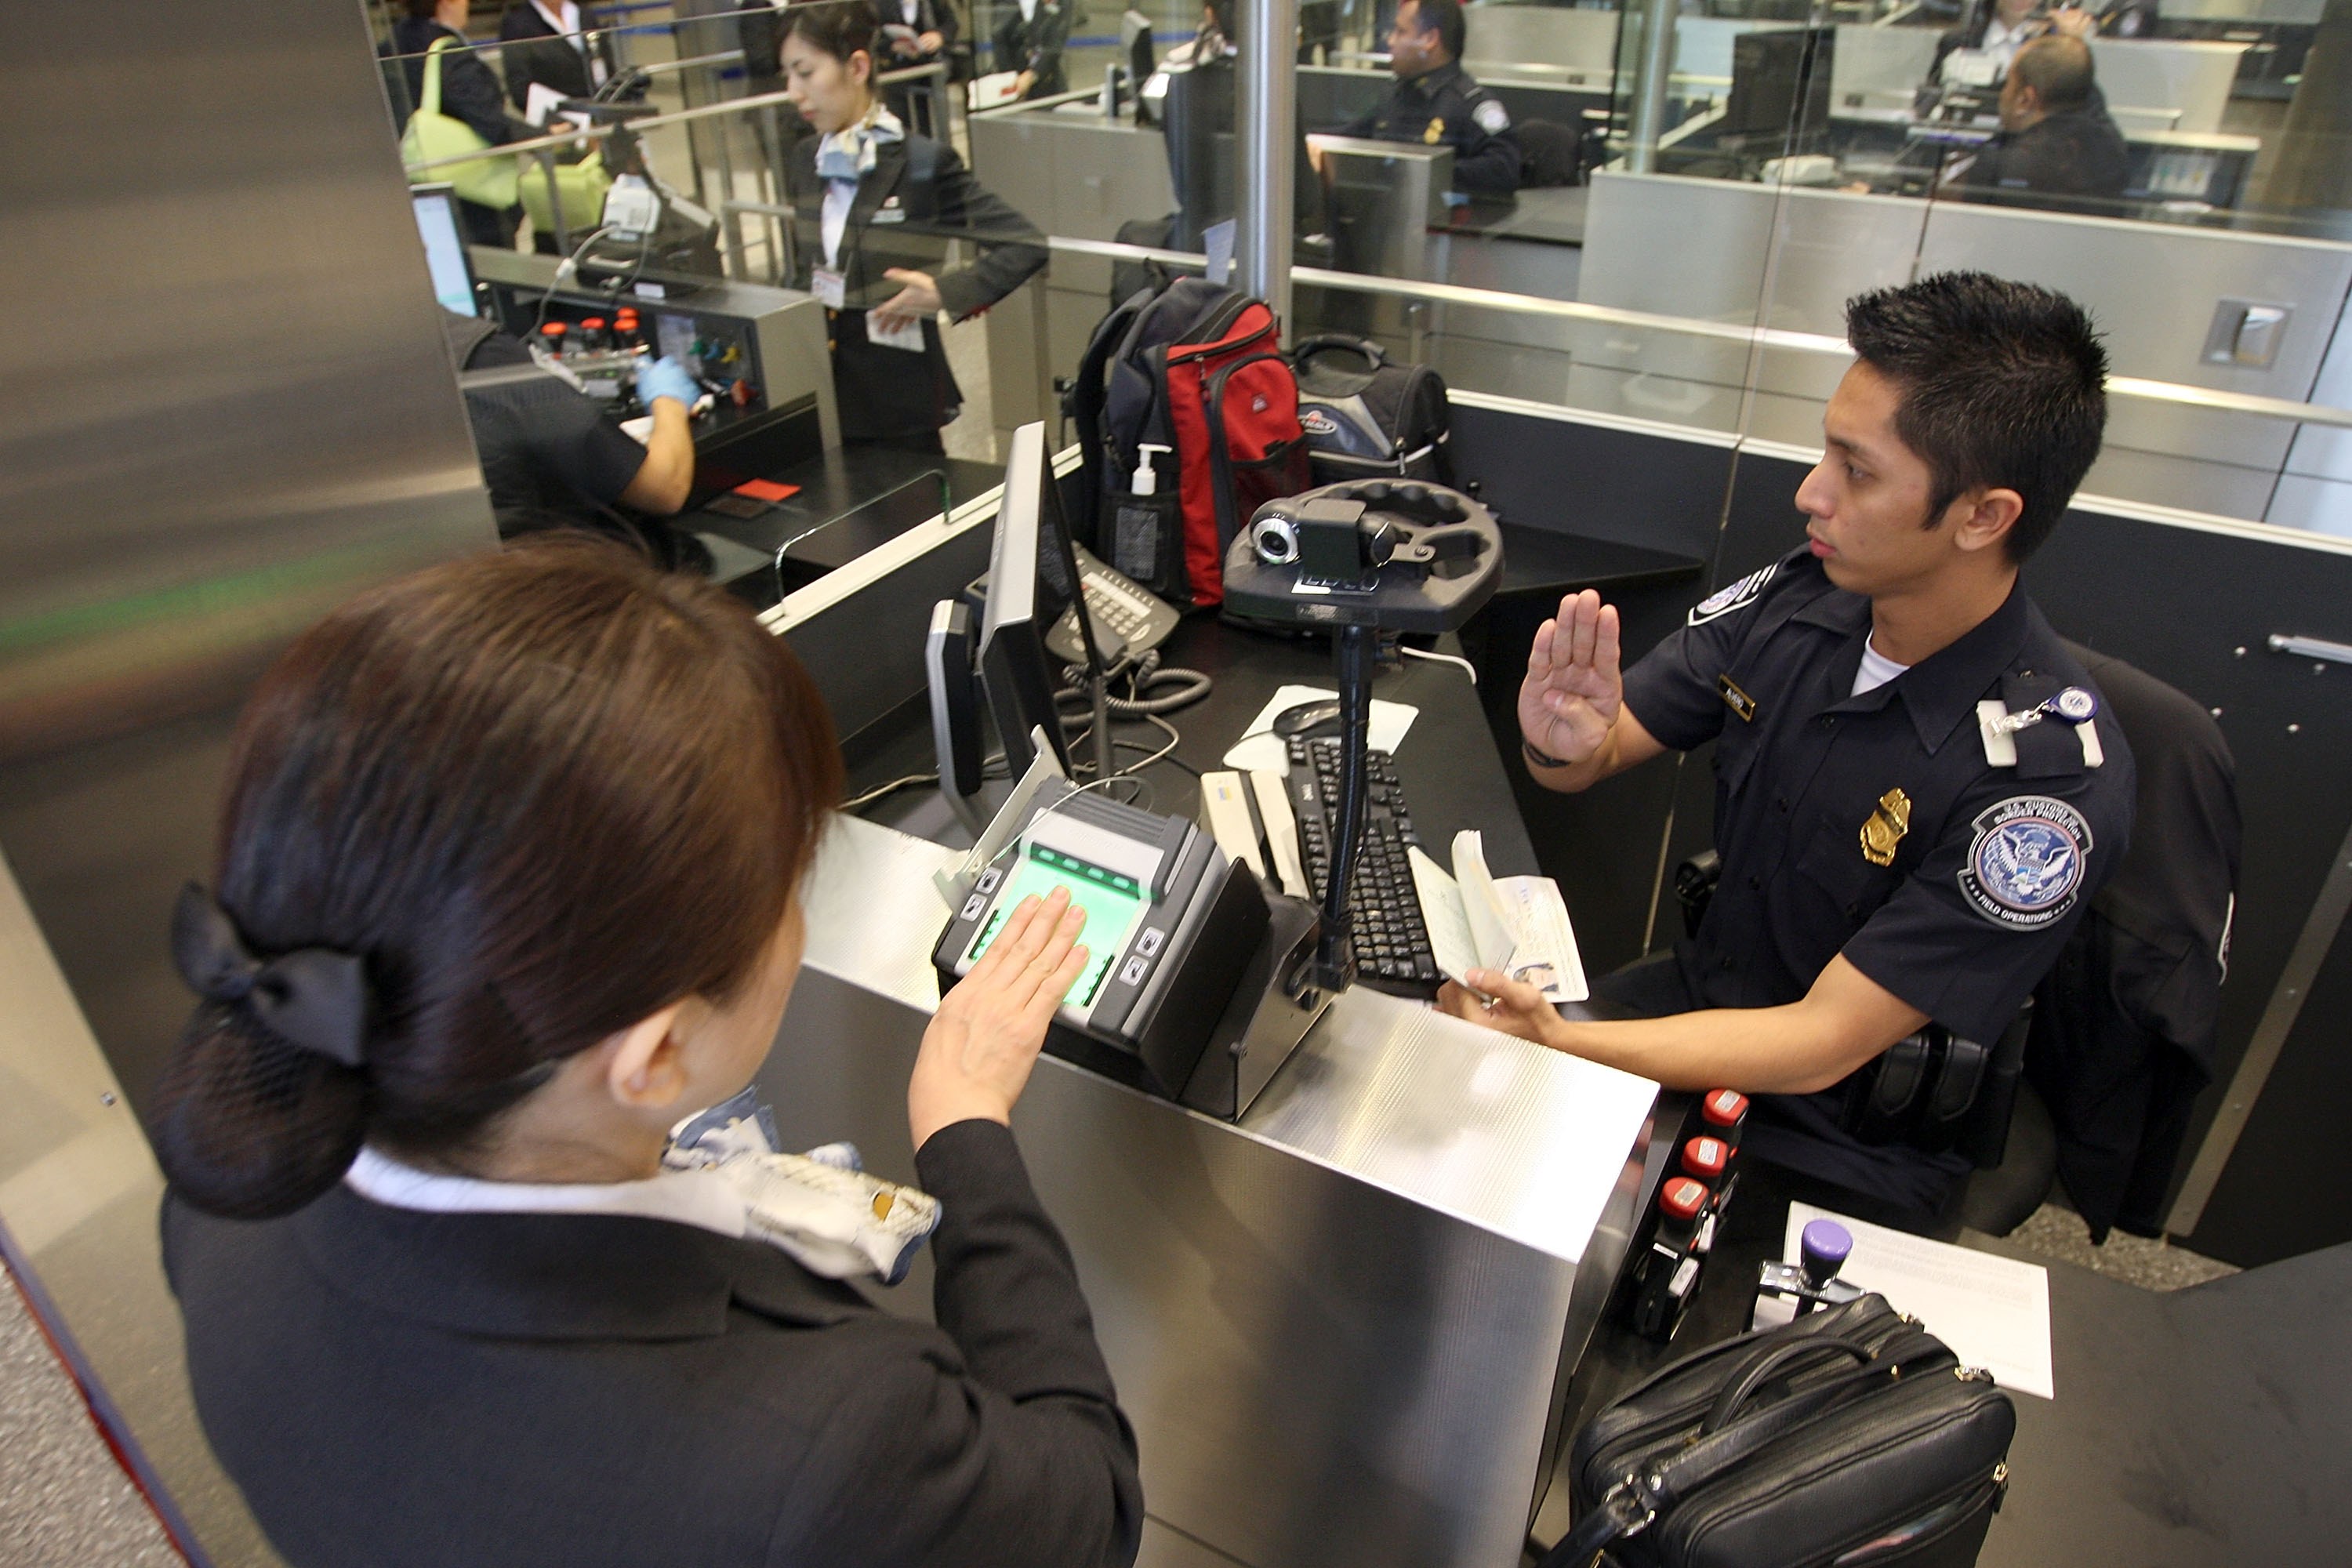 U.S. judge rules suspicionless searches of travelers' electronic devices unconstitutional